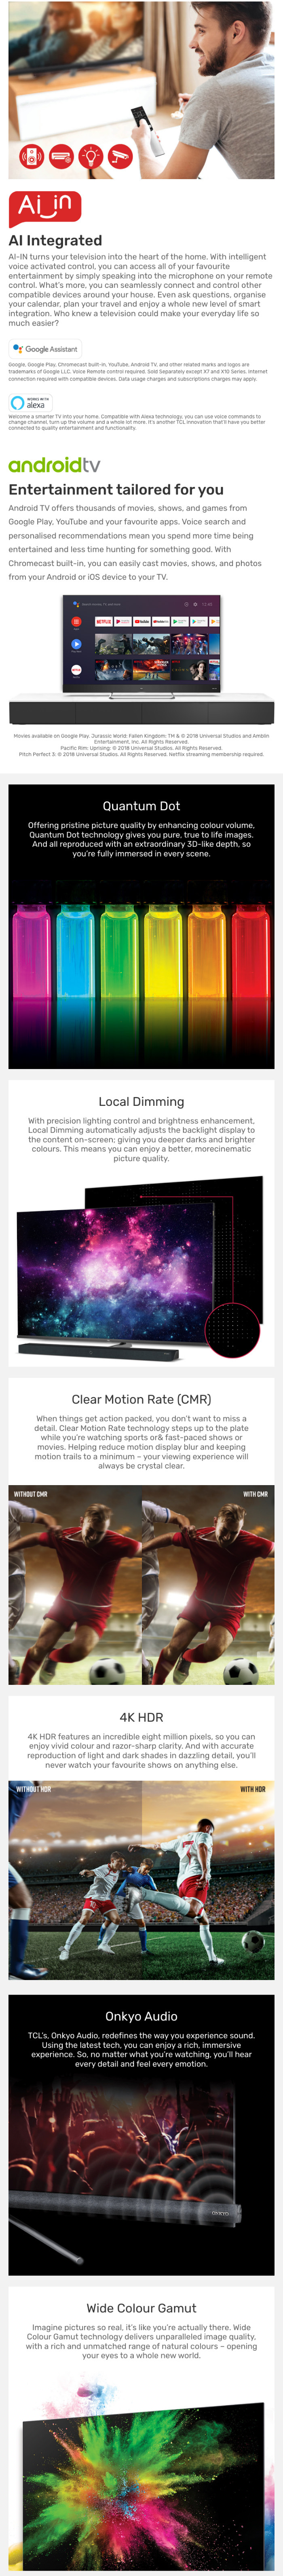 TCL X7 Premium 4K UHD HDR QLED Android TV with Onkyo Audio | AV